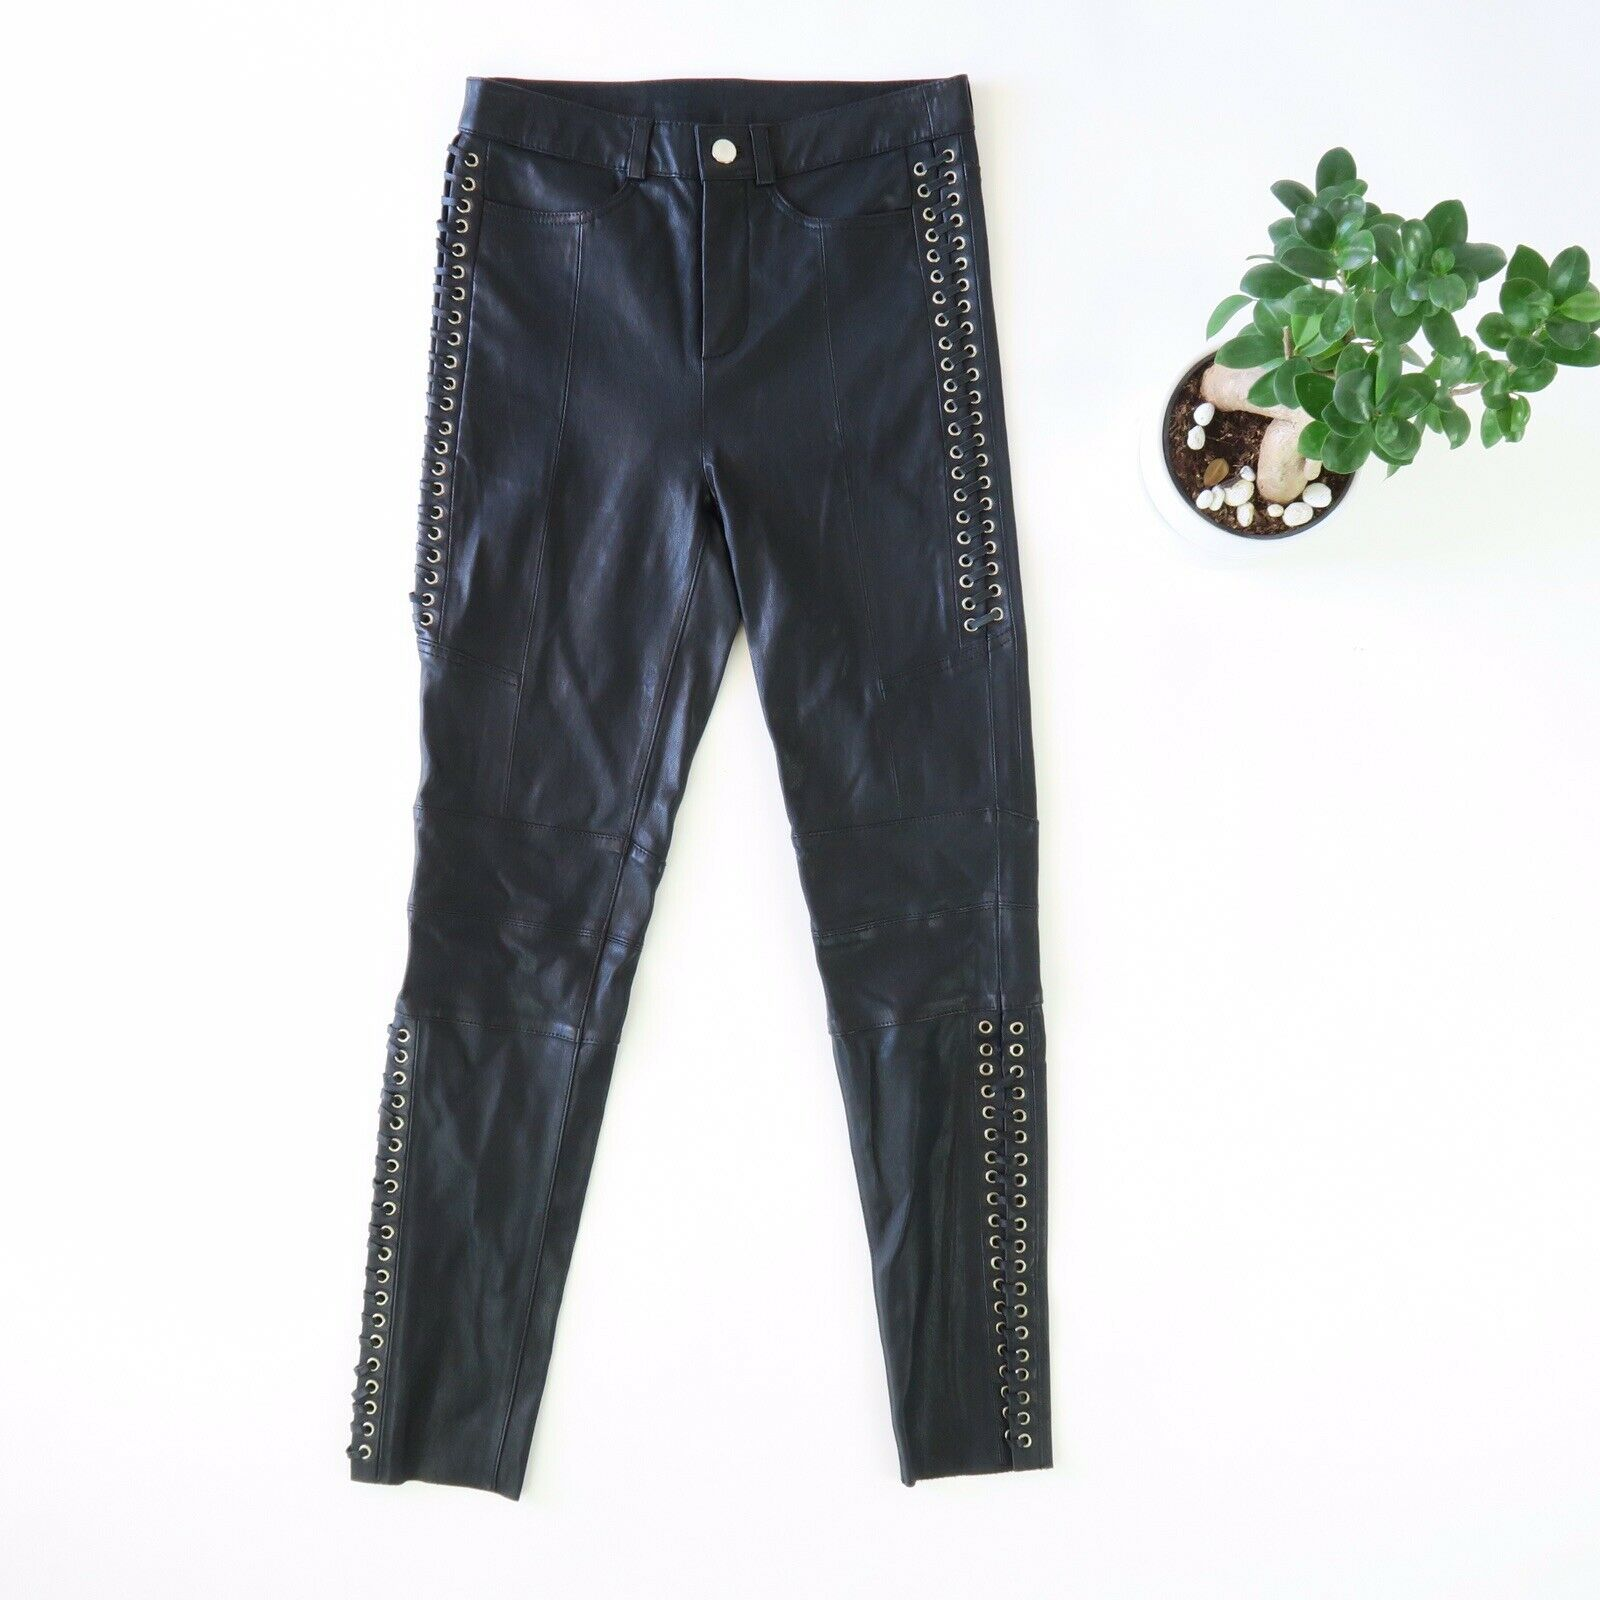 TOPSHOP Real Leather Lace-Up Biker Pants - Women's Size US 4